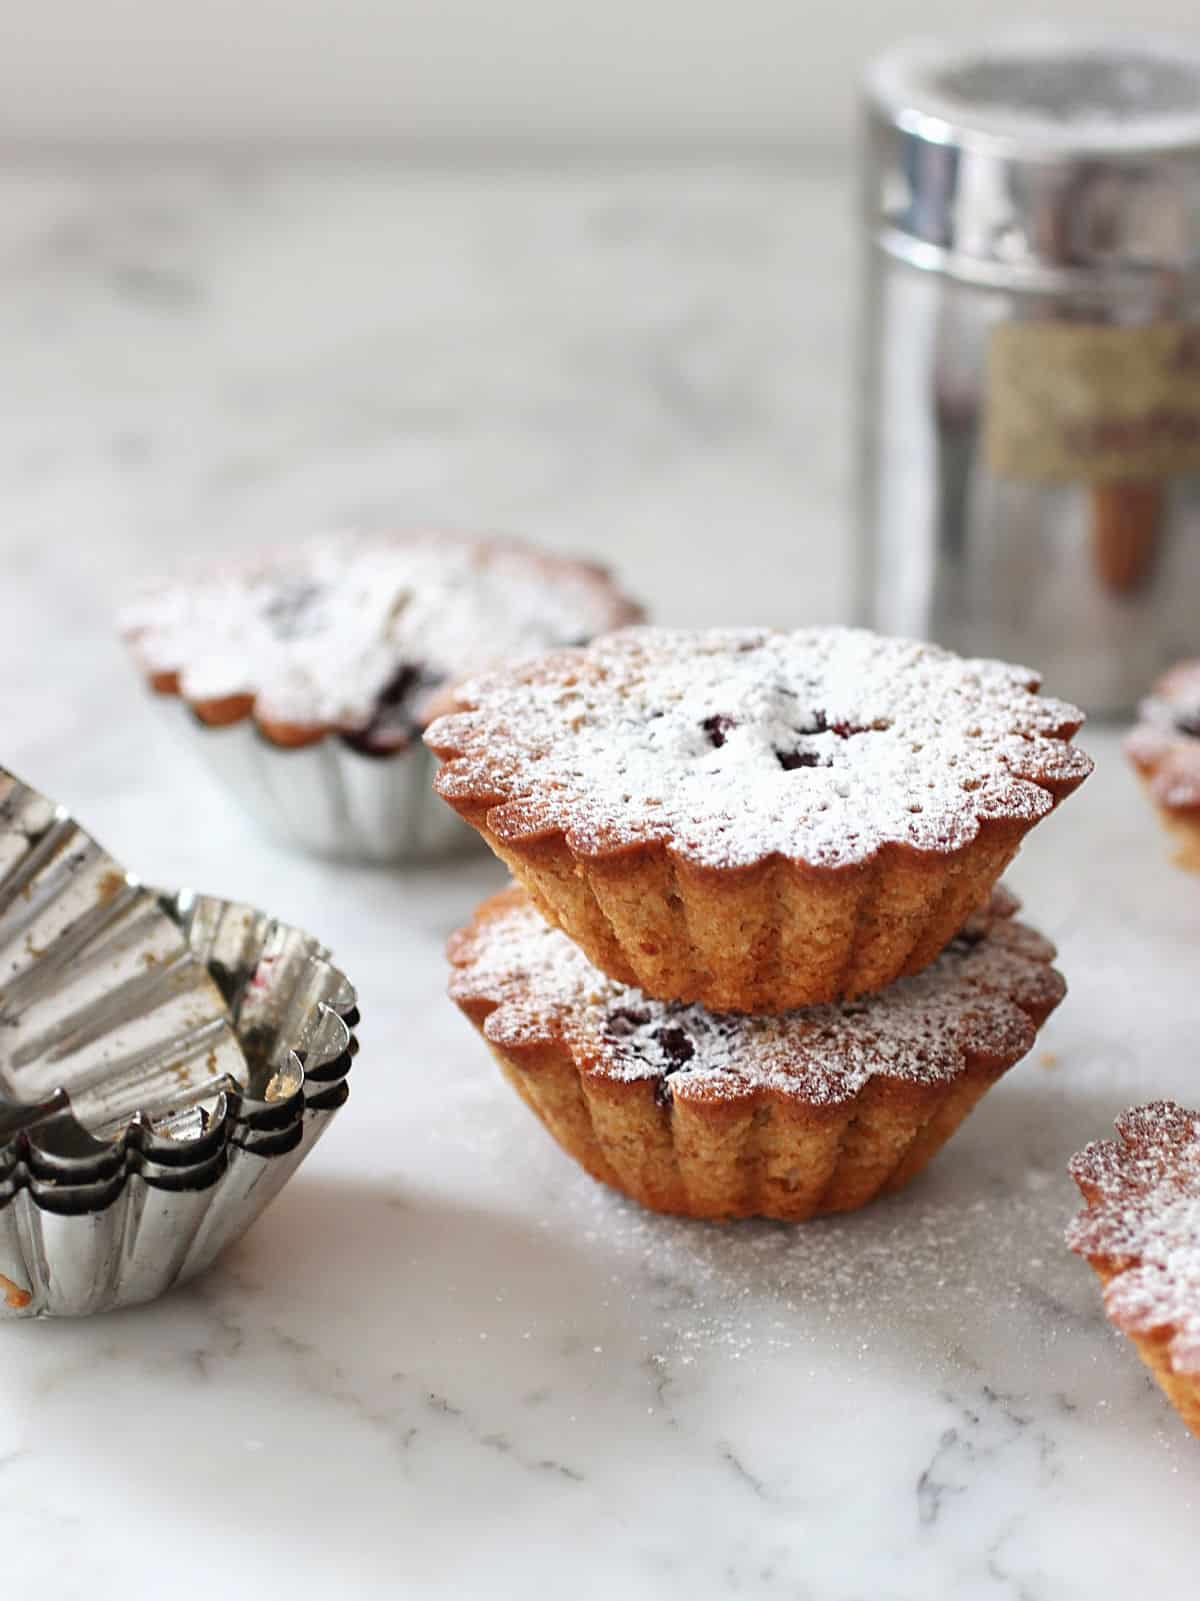 Several mini cakes on white marble surface, fluted molds and sugar shaker